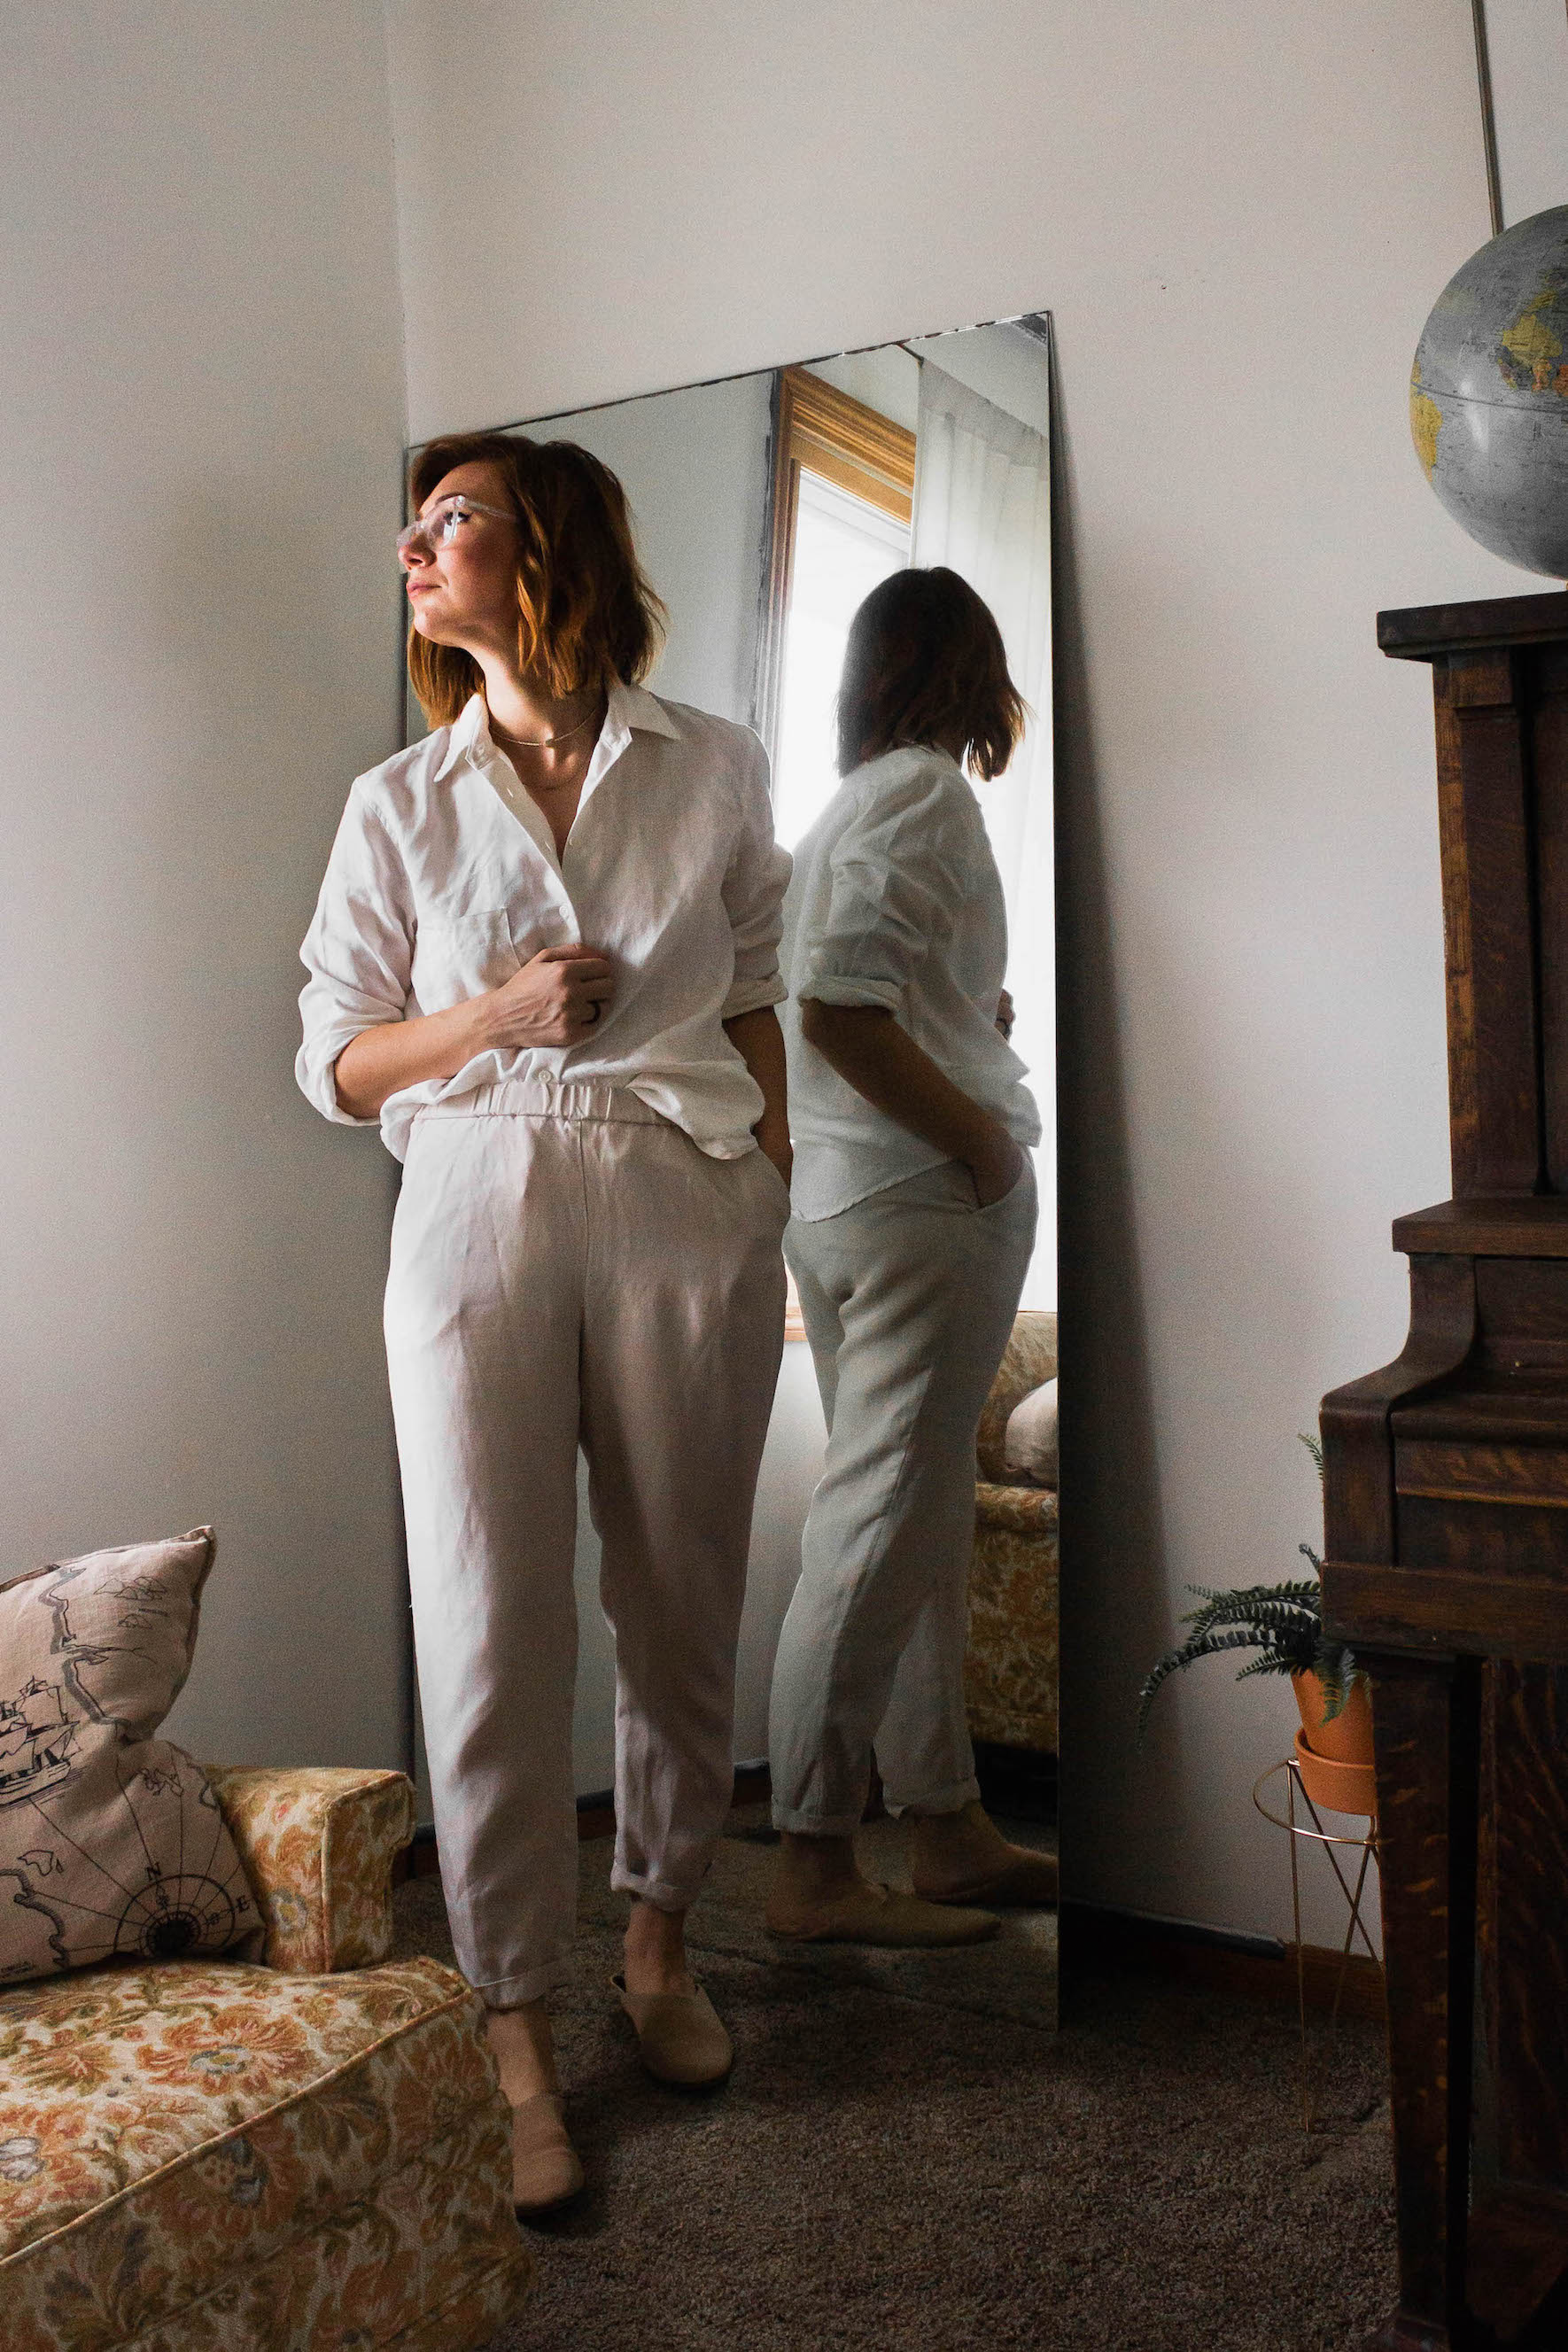 Cream and white linen outfit - A Week Of Easy & Sophisticated Outfits With Karin Rambo From Truncation on The Good Trade